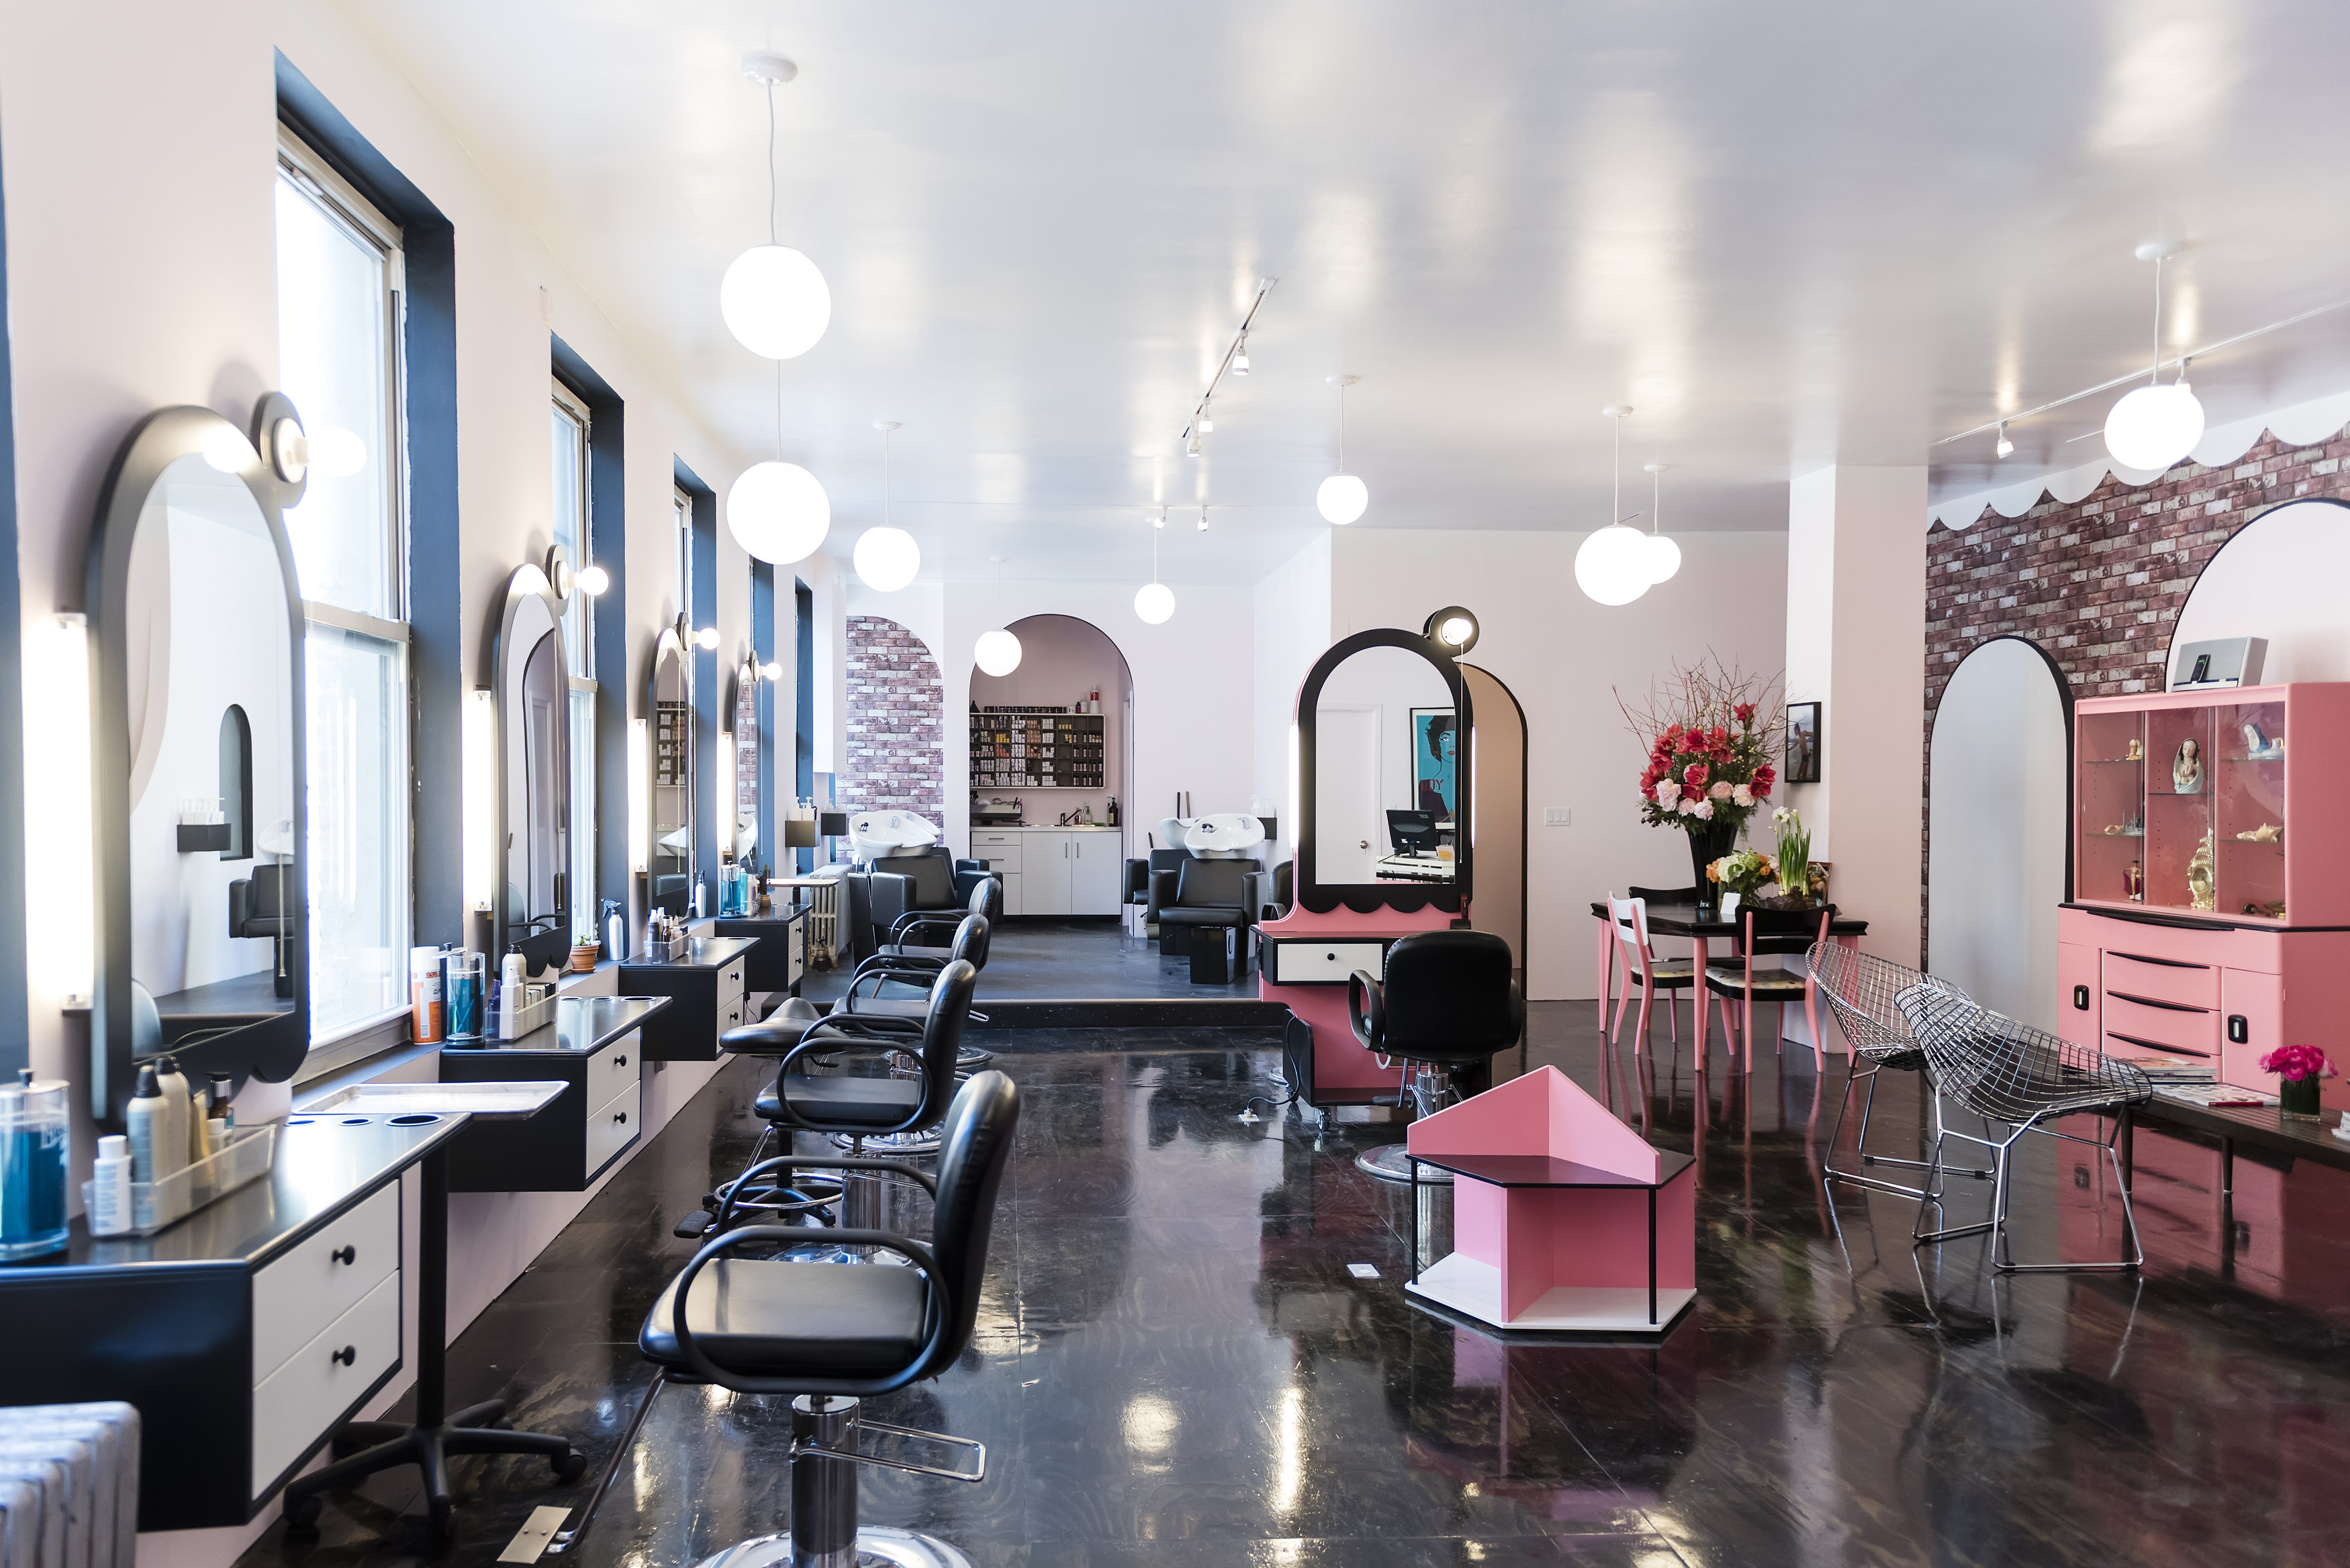 √ Salons In Nyc That Specialize In Hair Coloring For Black